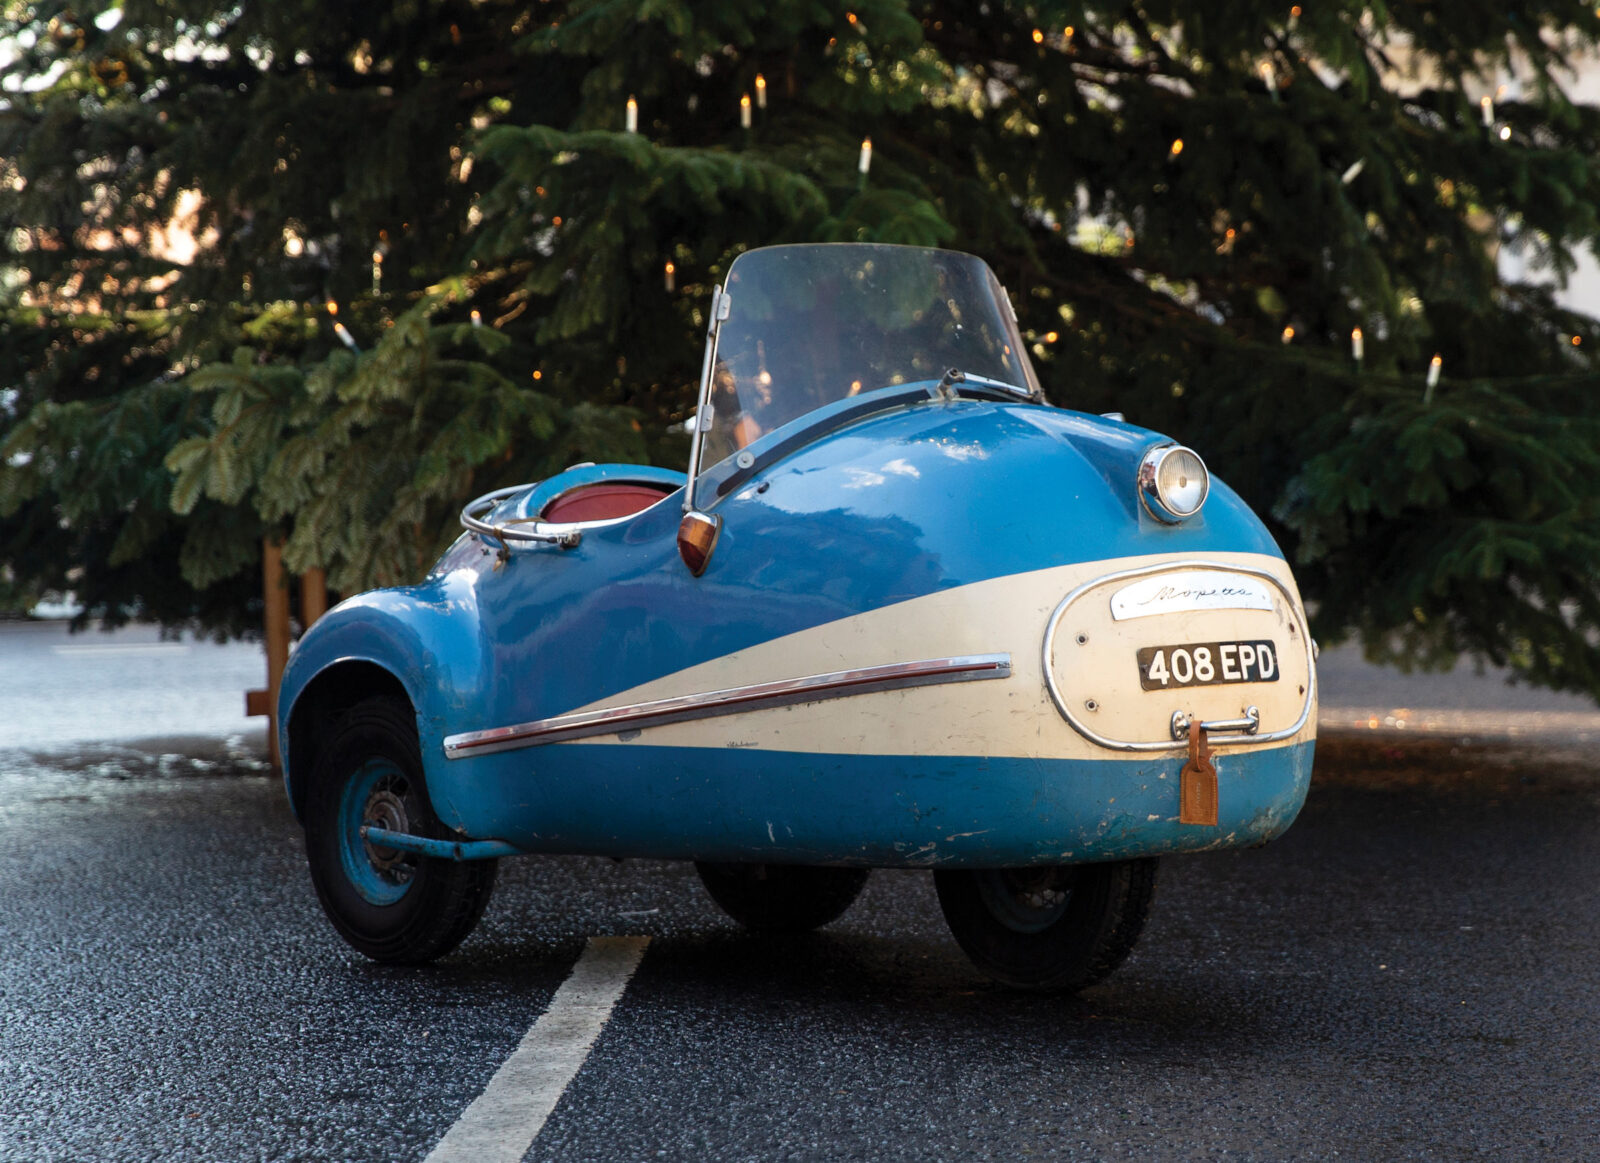 The Brütsch Mopetta A Rare And Unusual German Microcar